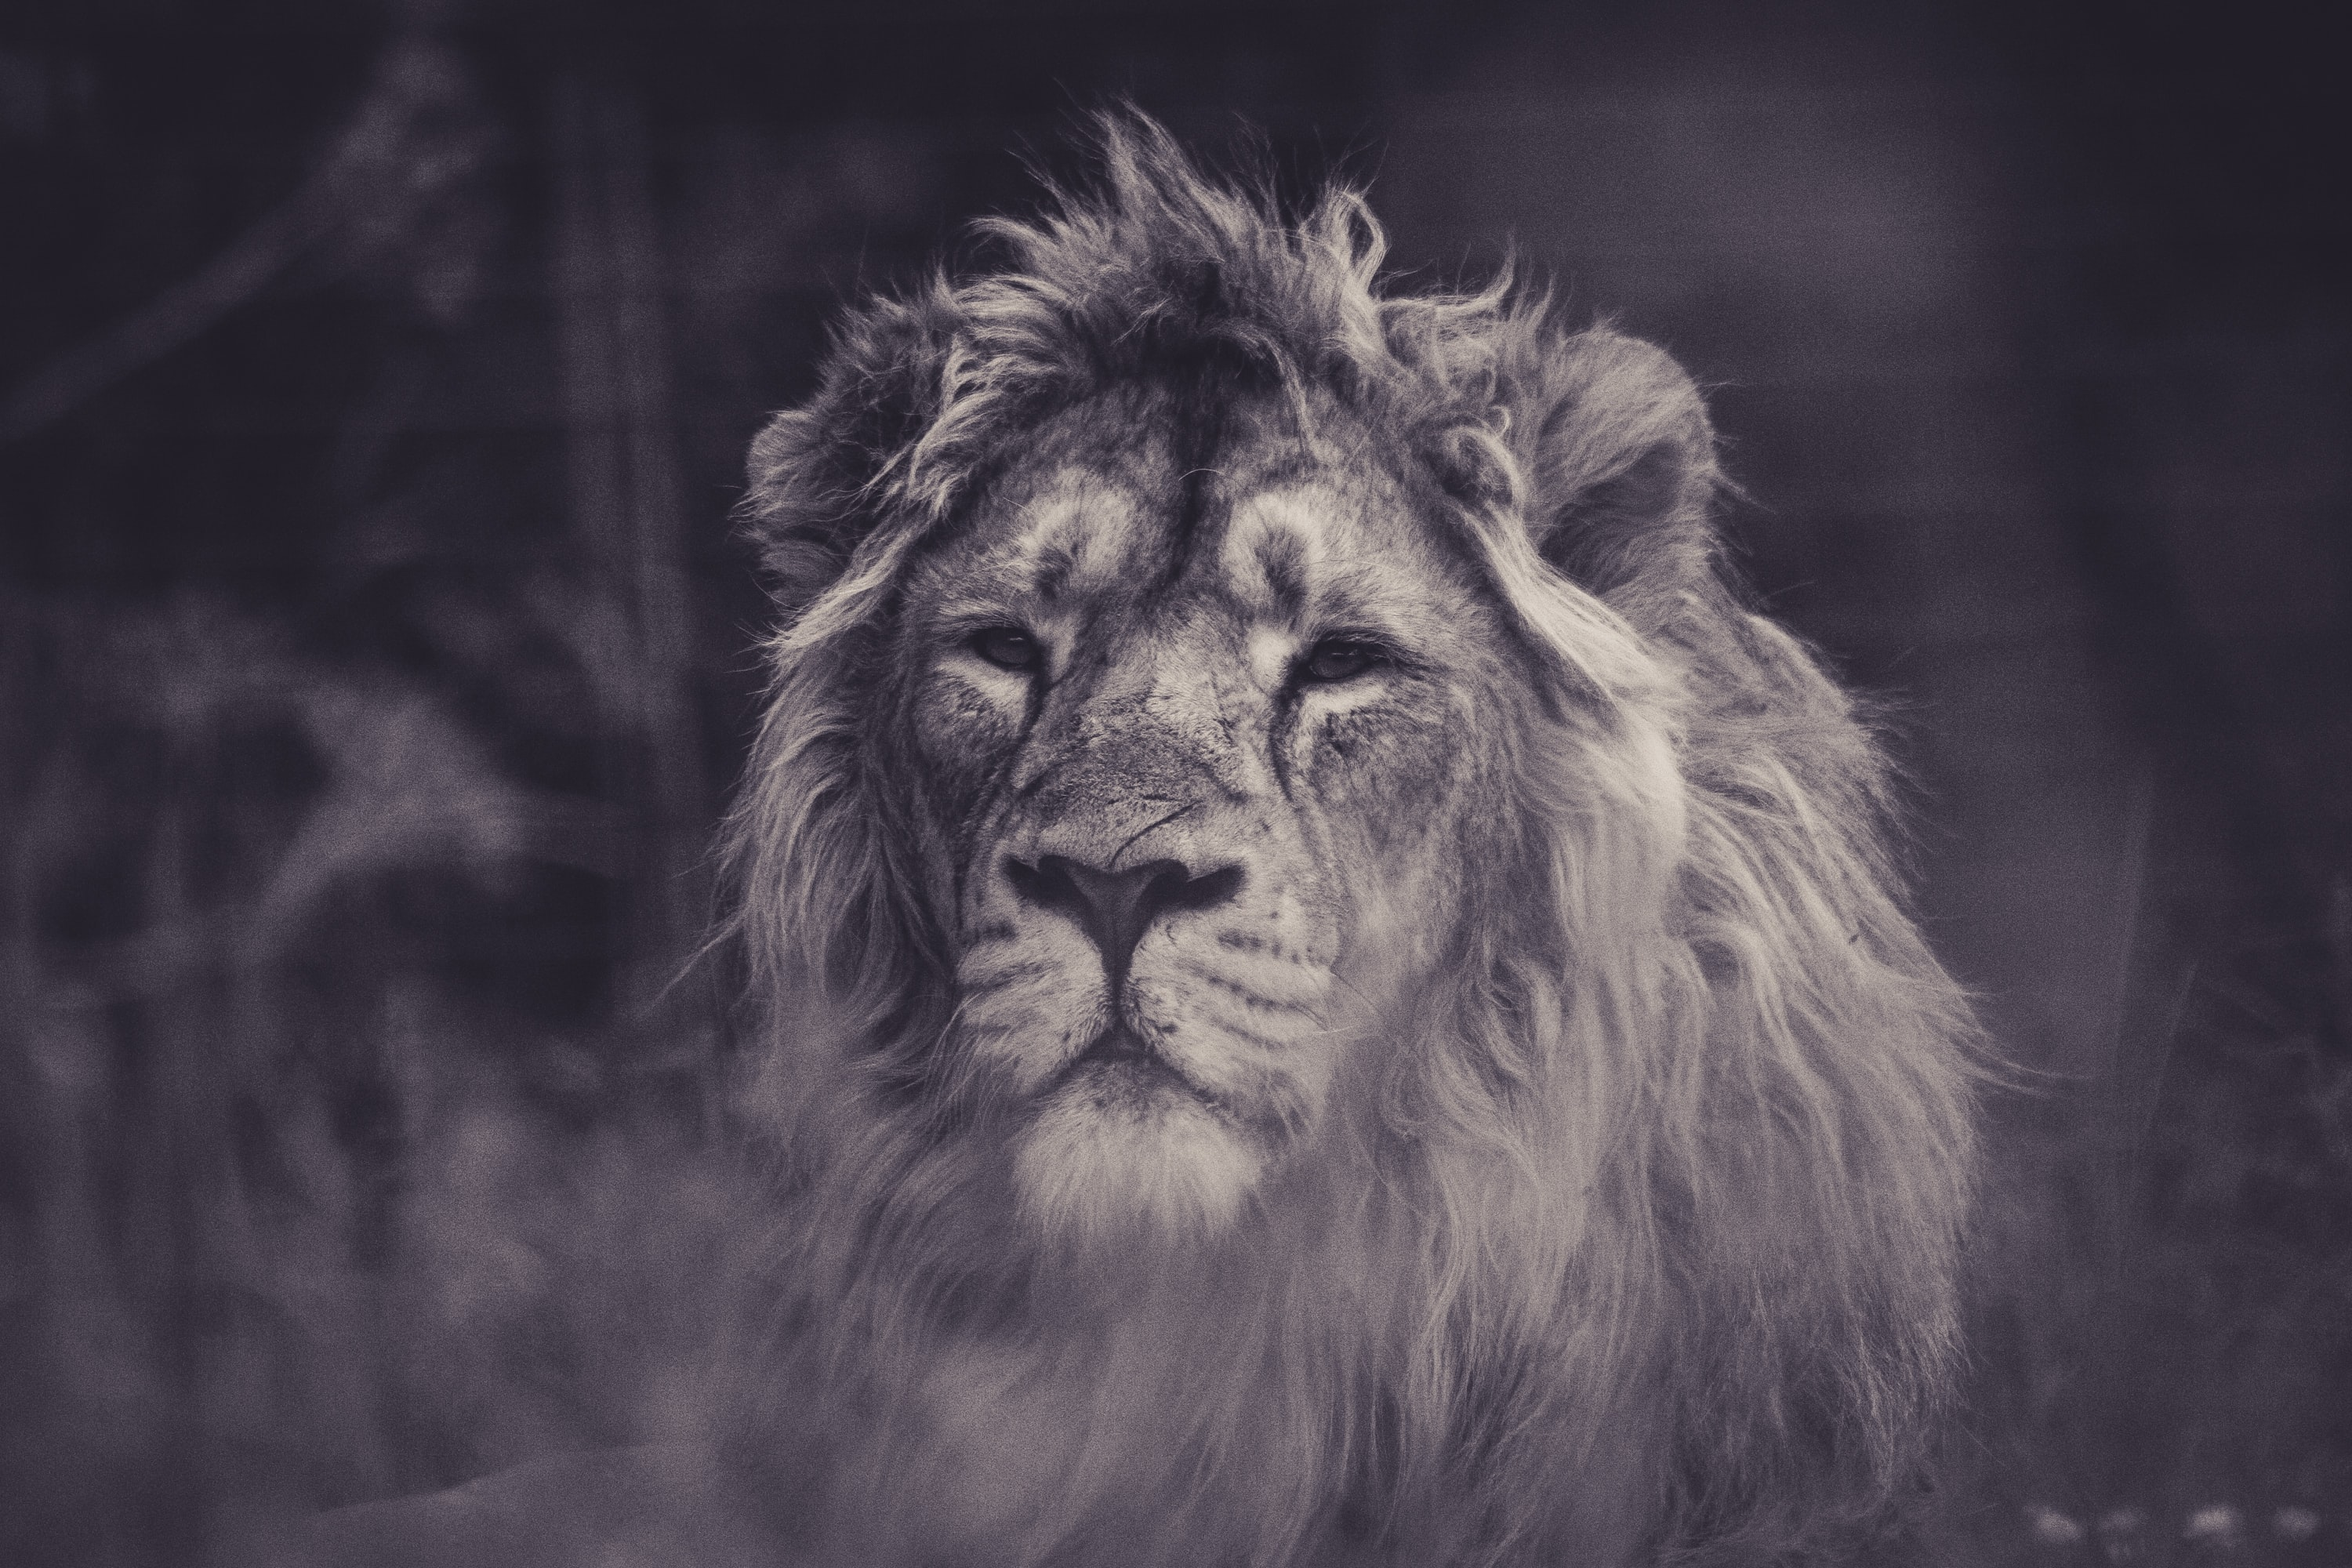 Black and white shot of lion facing camera in Eskilstuna